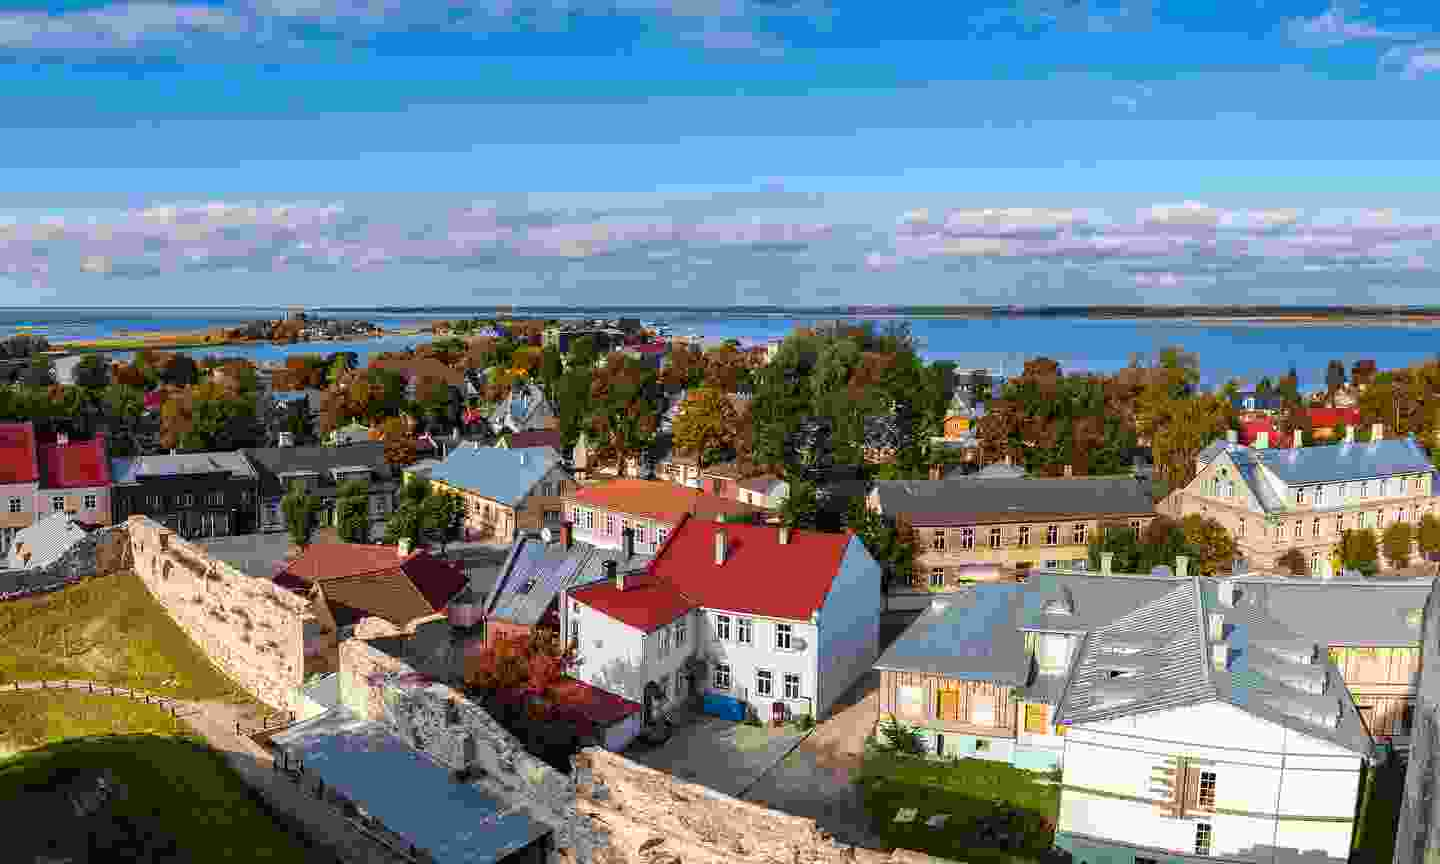 The lovely town of Haapsalu (Dreamstime)